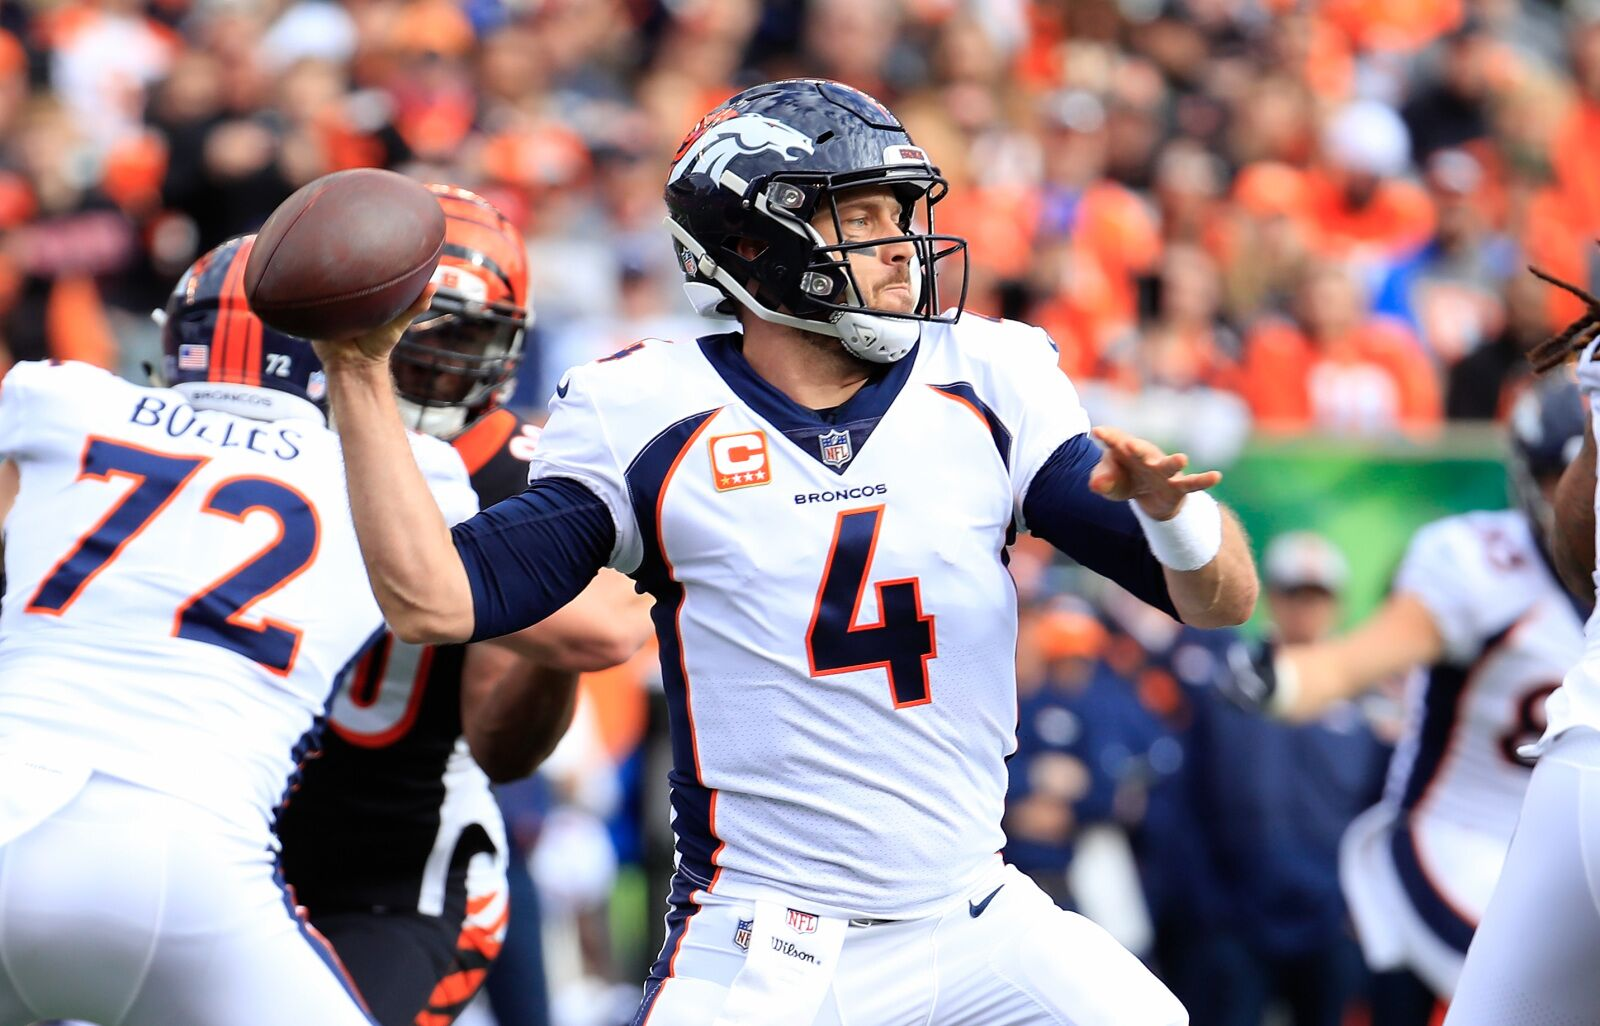 Denver Broncos: Case Keenum has not been the problem